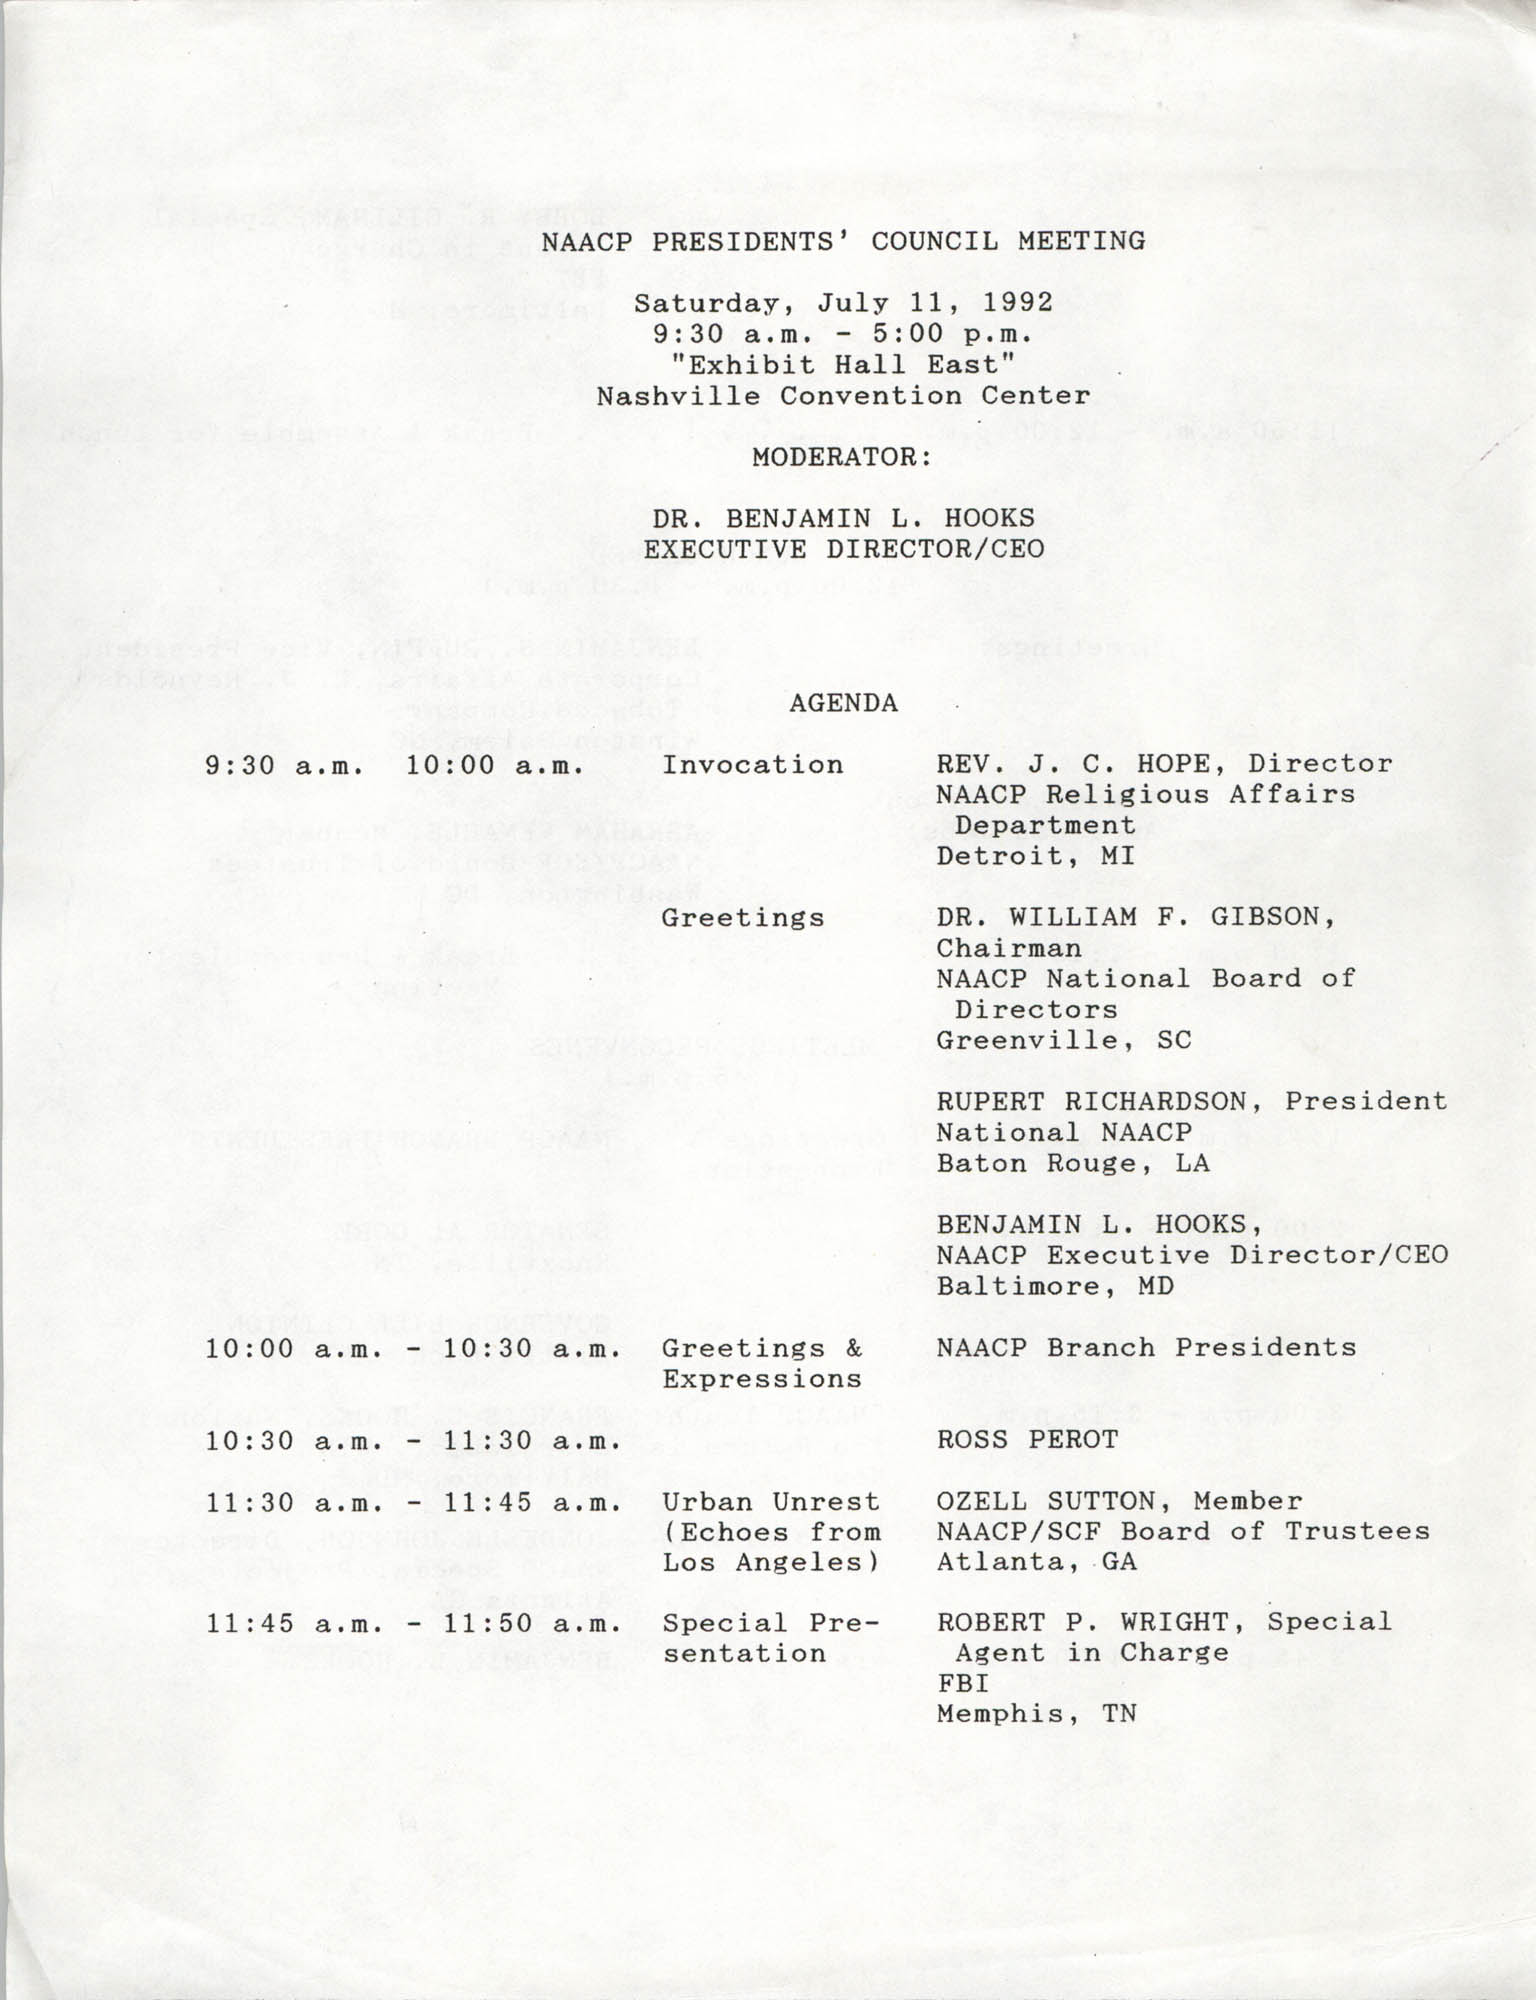 NAACP Presidents' Council Meeting Agenda, July 11, 1992